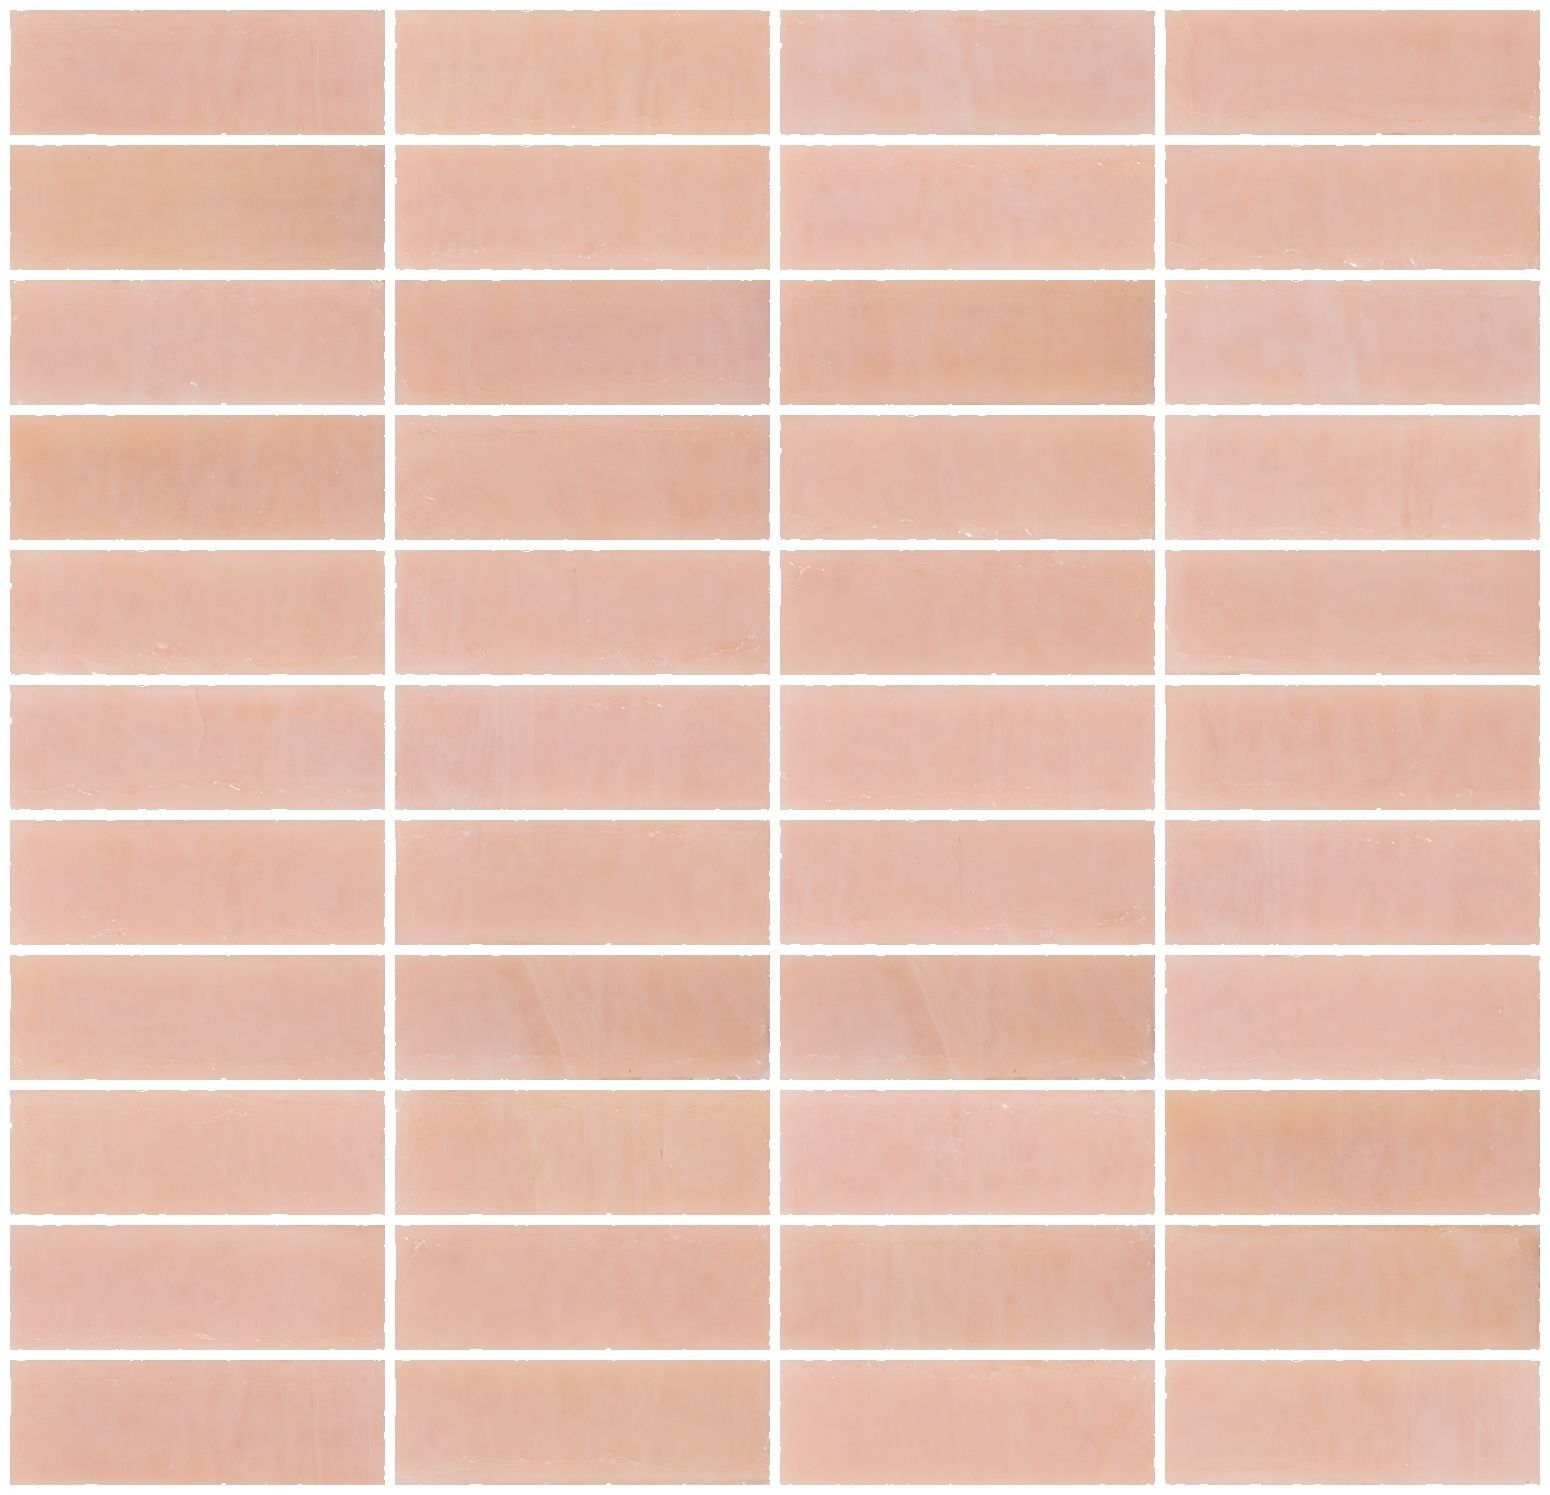 1x3 Inch Opaque Blush Pink Glass Subway Tile Stacked Pink Tiles Glass Subway Tile Black Interior Doors